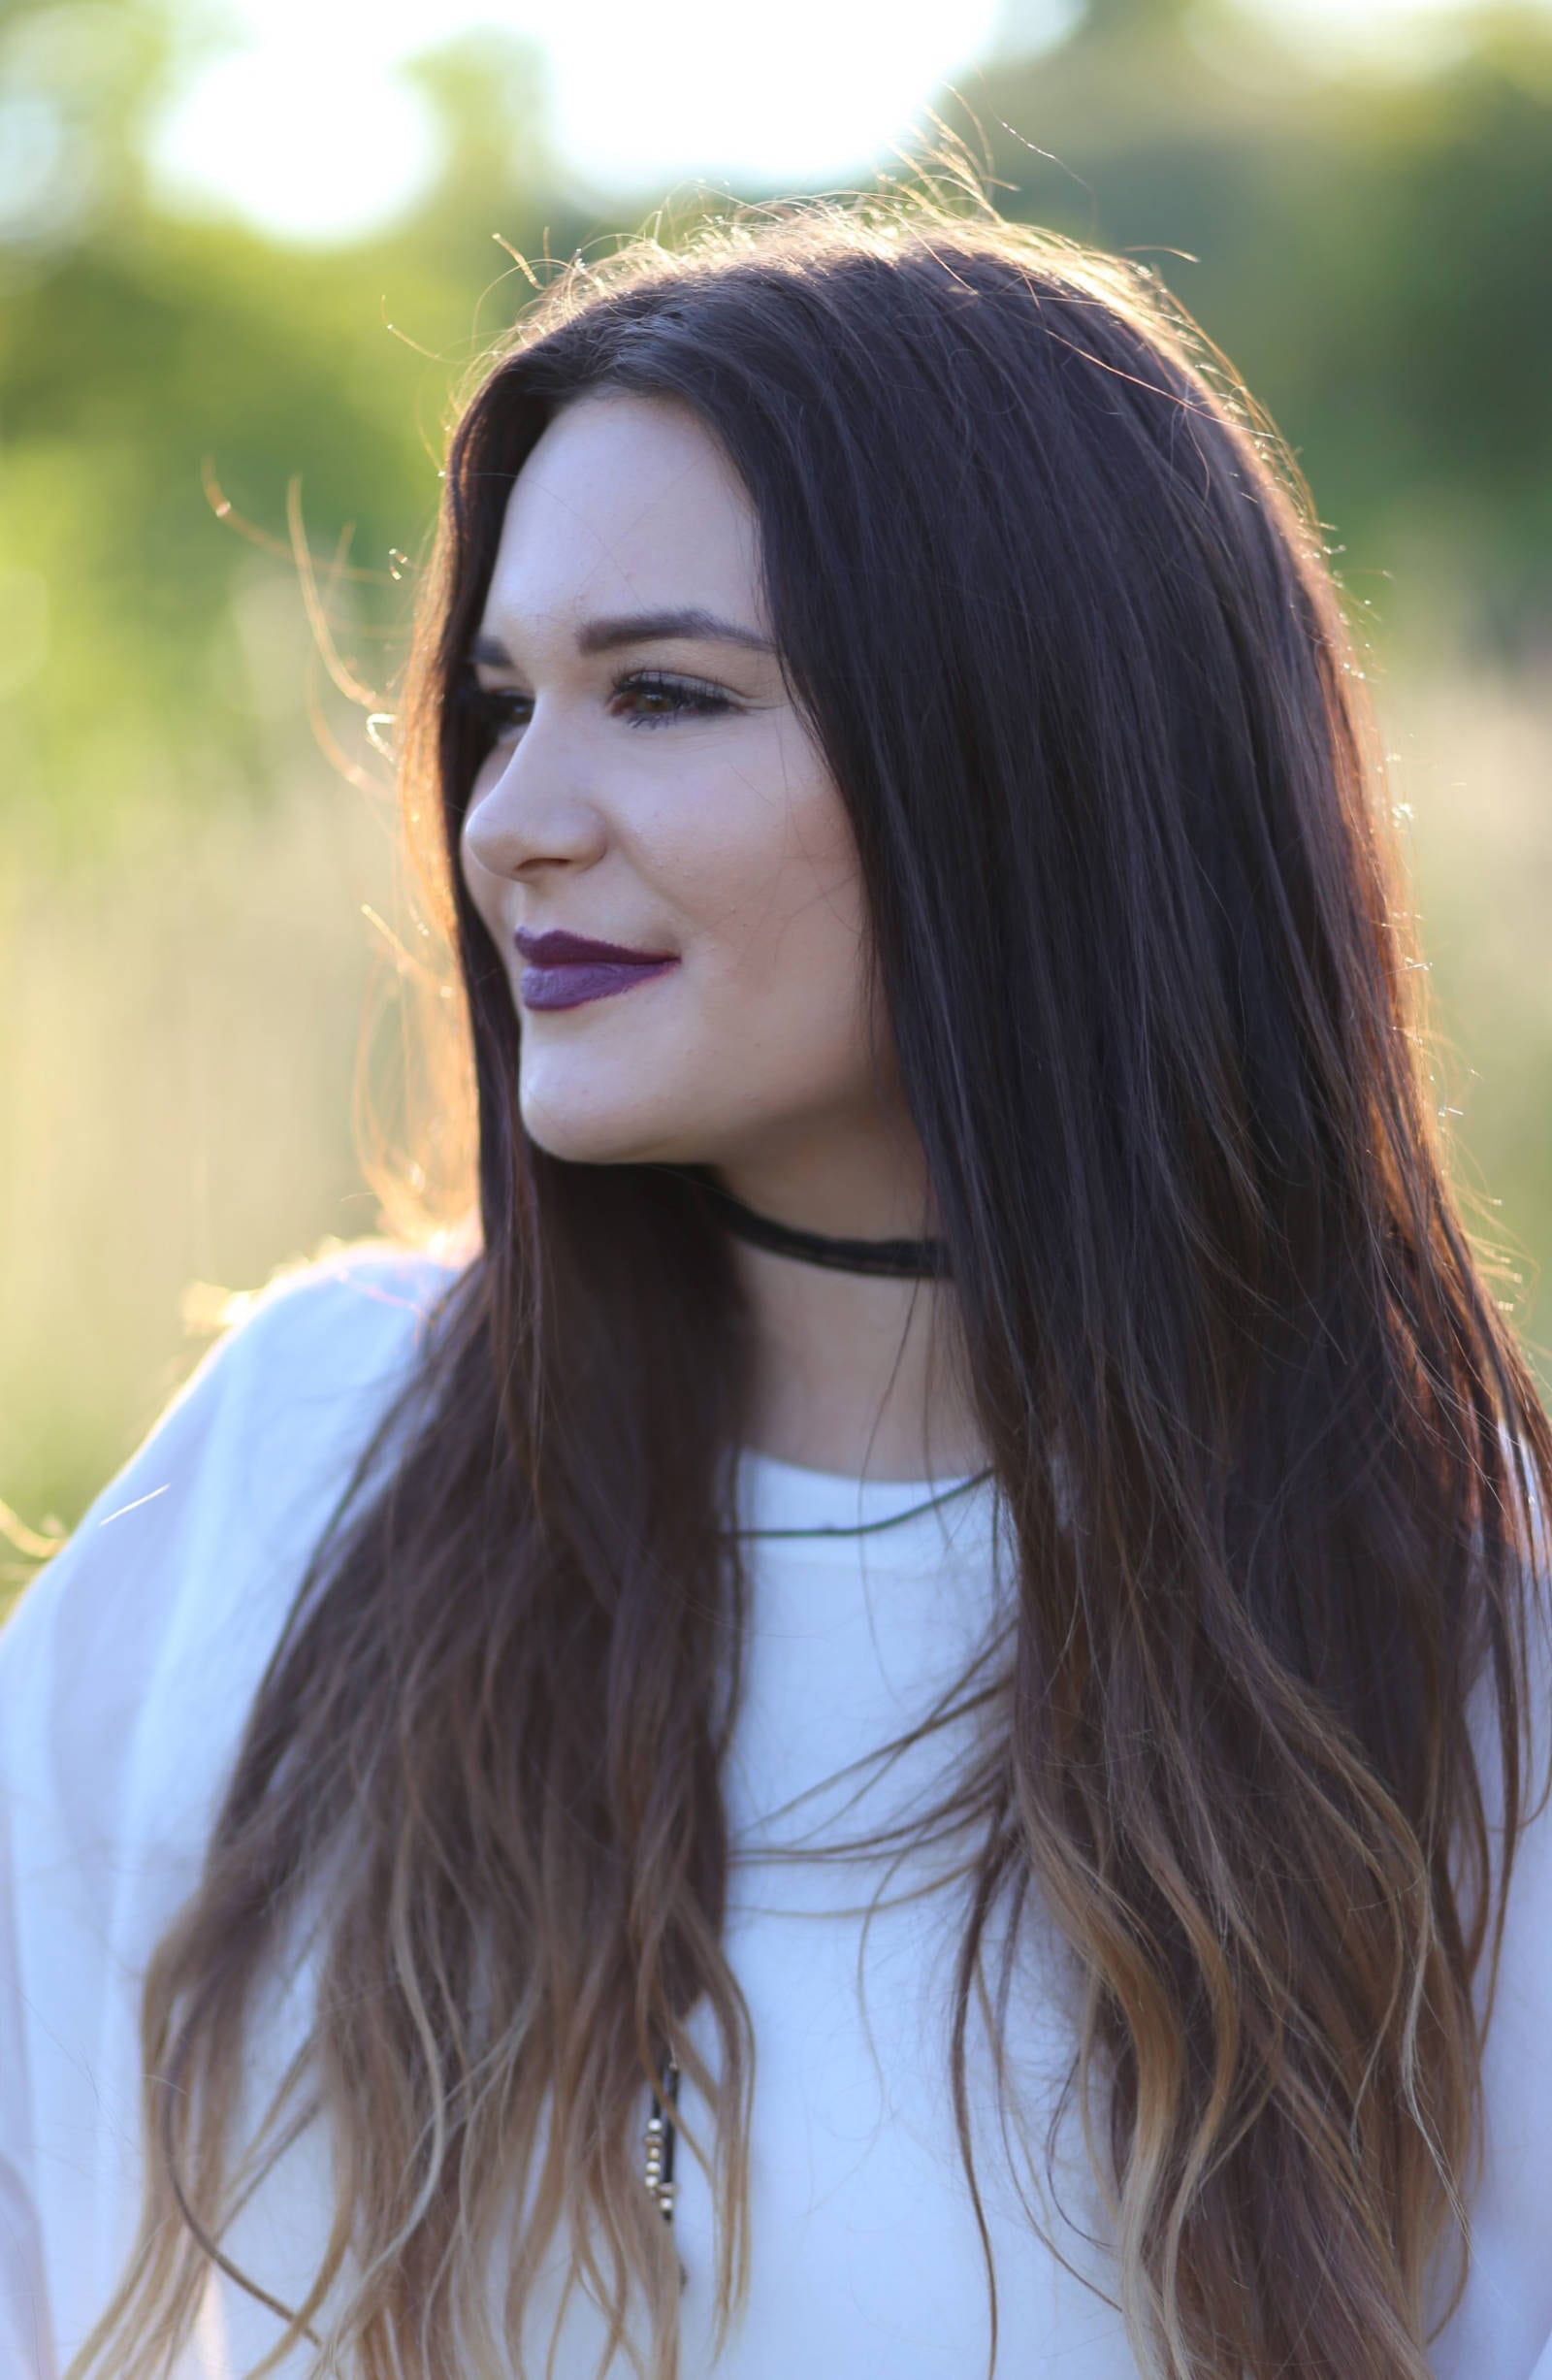 Beauty blogger Mash Elle models an easy and affordable Fall makeup look using a berry MAC lipstick